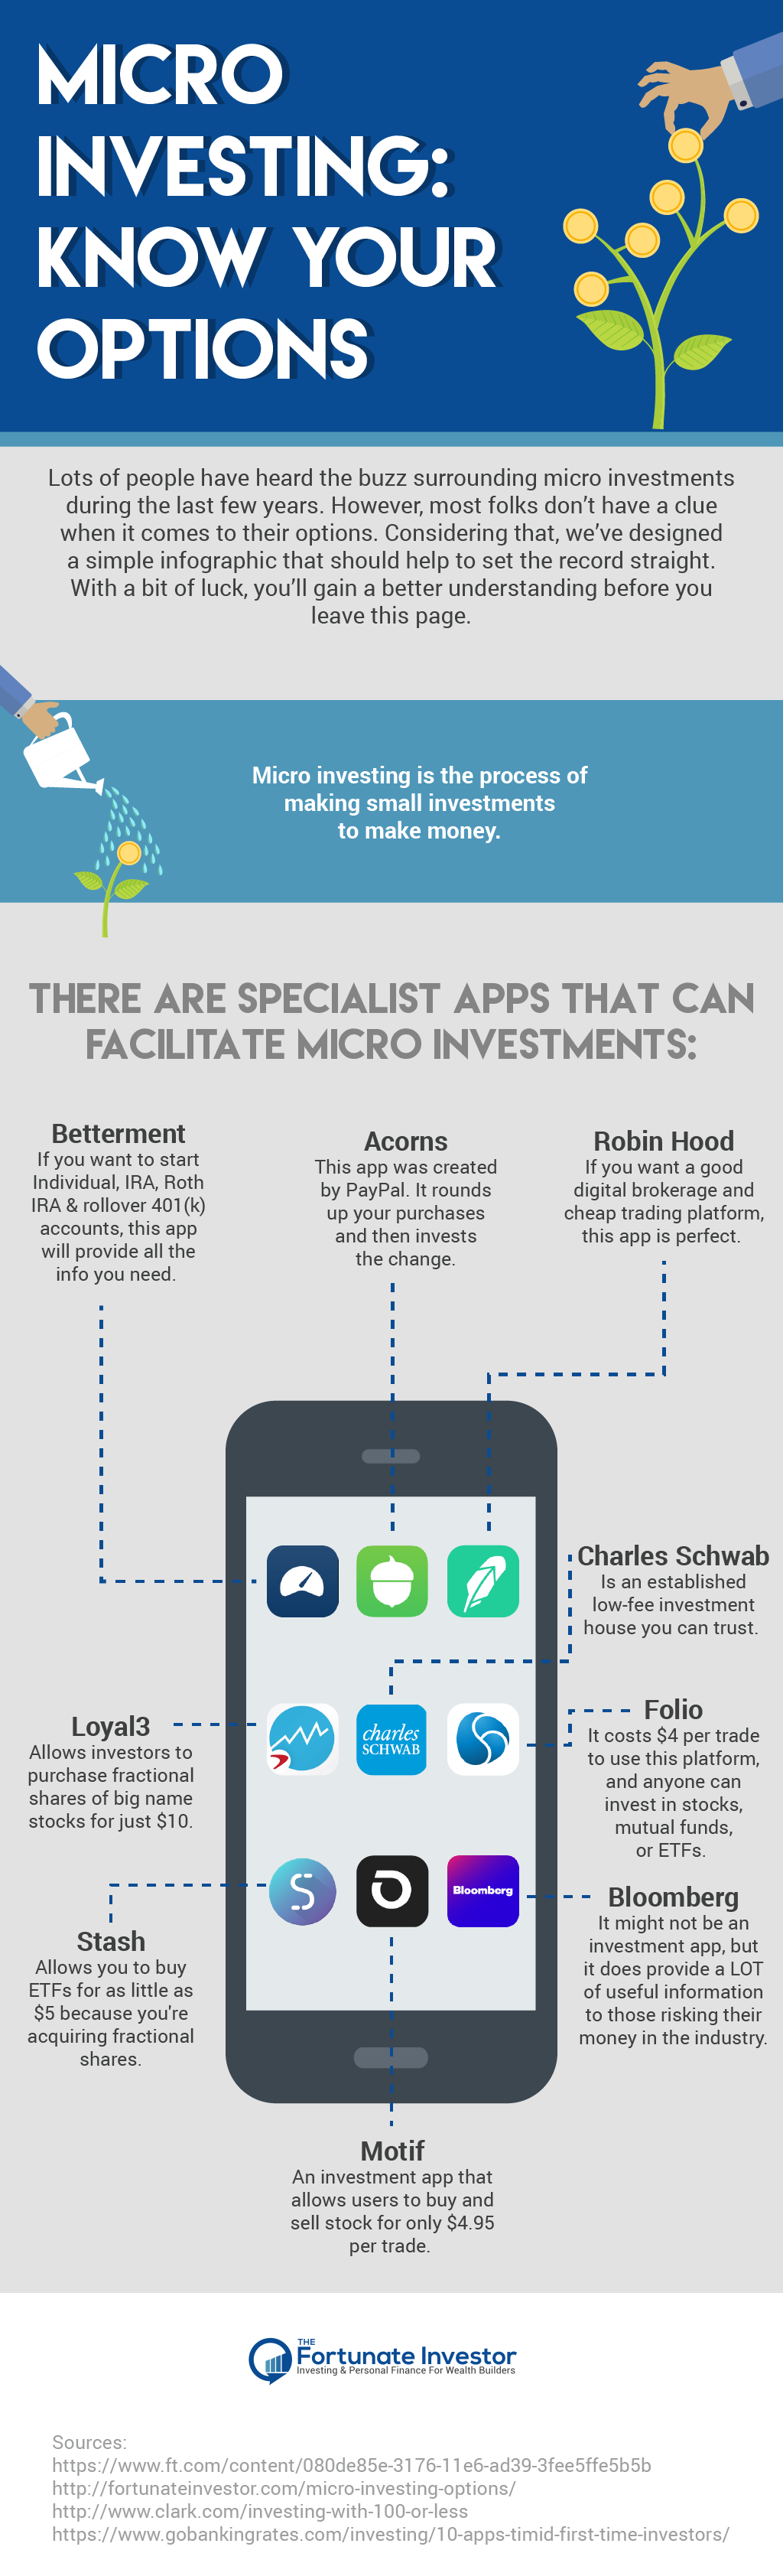 Micro Investing Know Your Options via the_fortunate